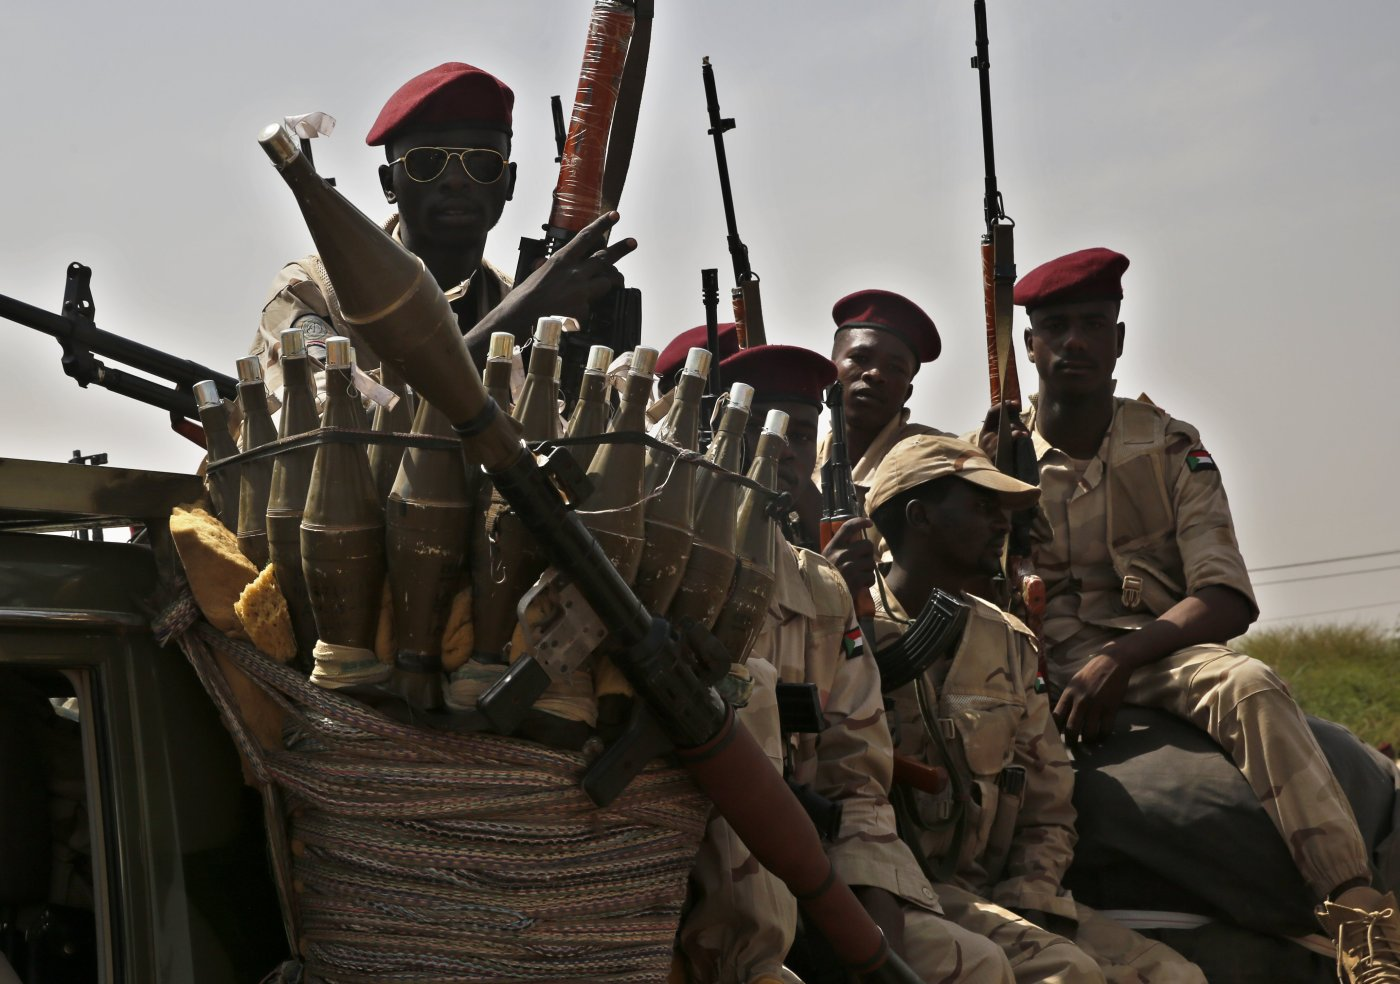 Sudanese militia, the Janjaweed terrorizing populations of Sudan(Photo: file/supplied)